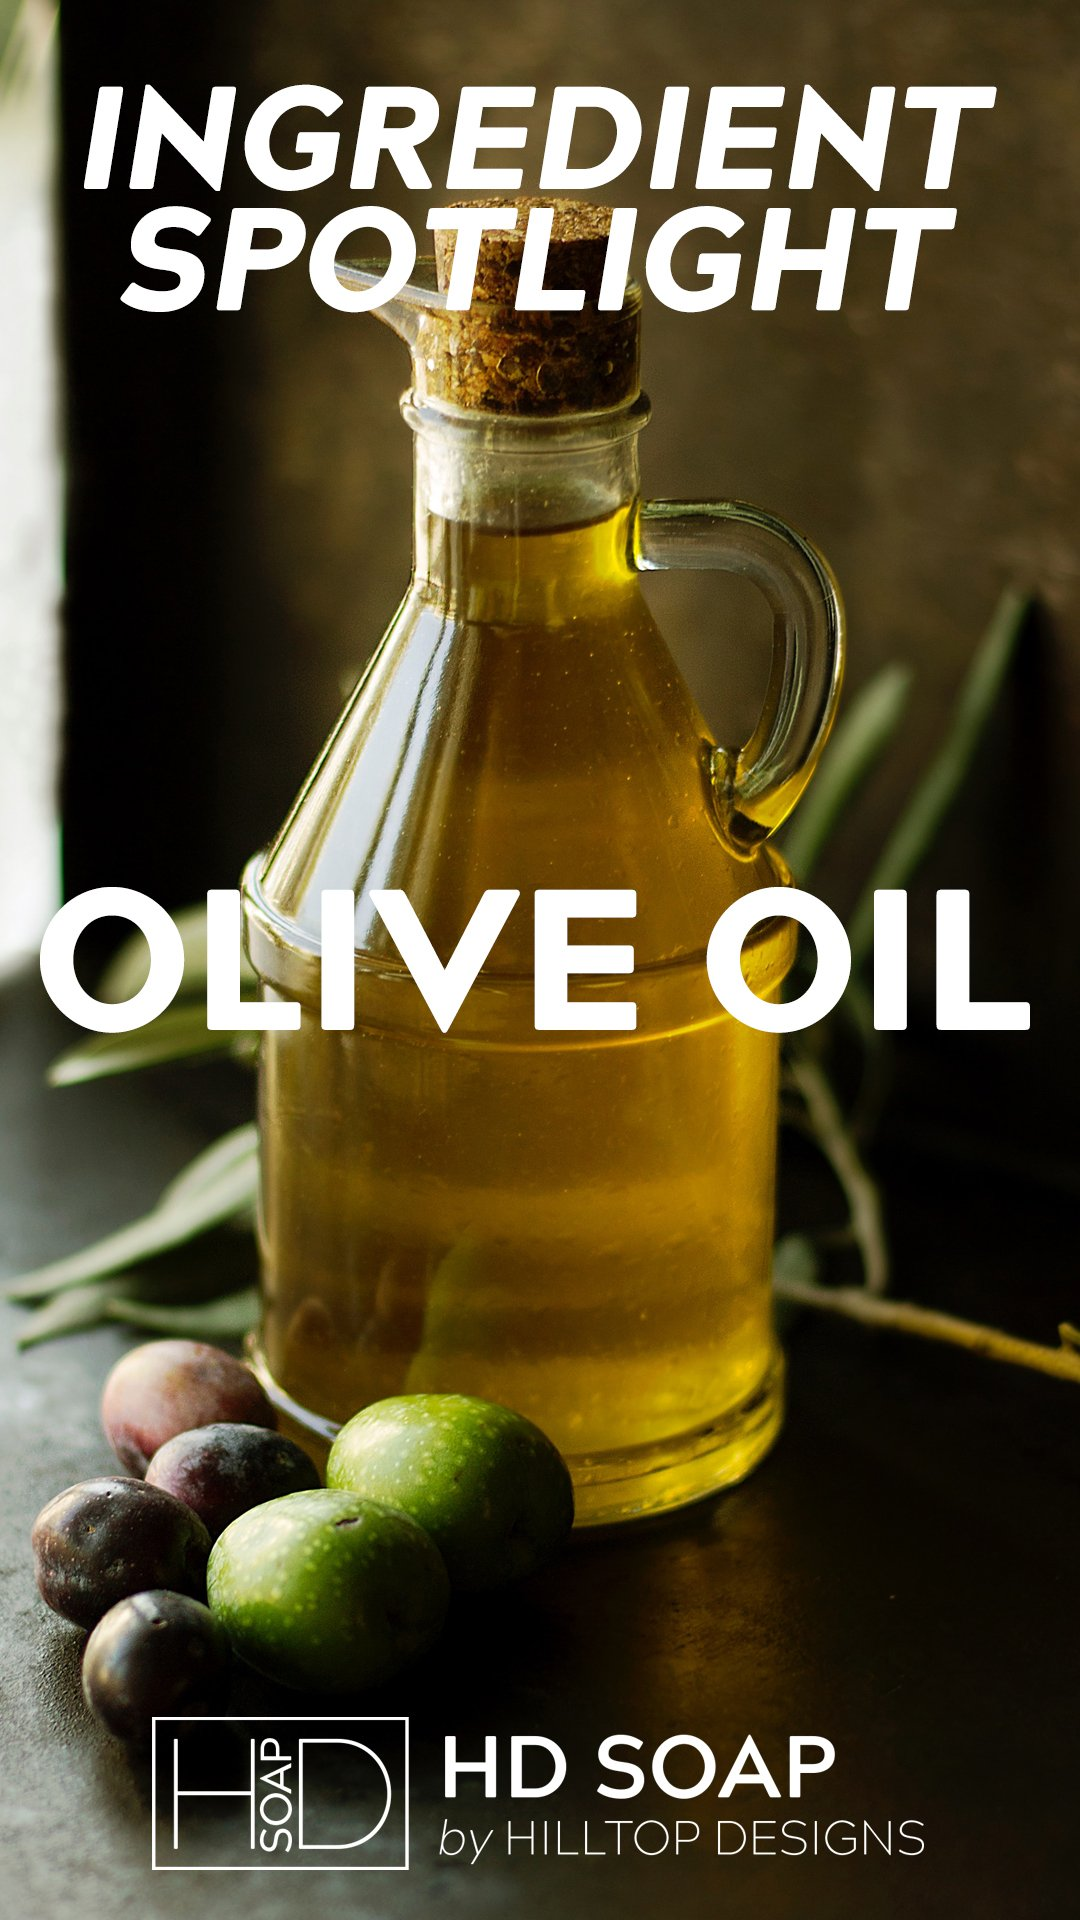 HD Soap | Olive Oil